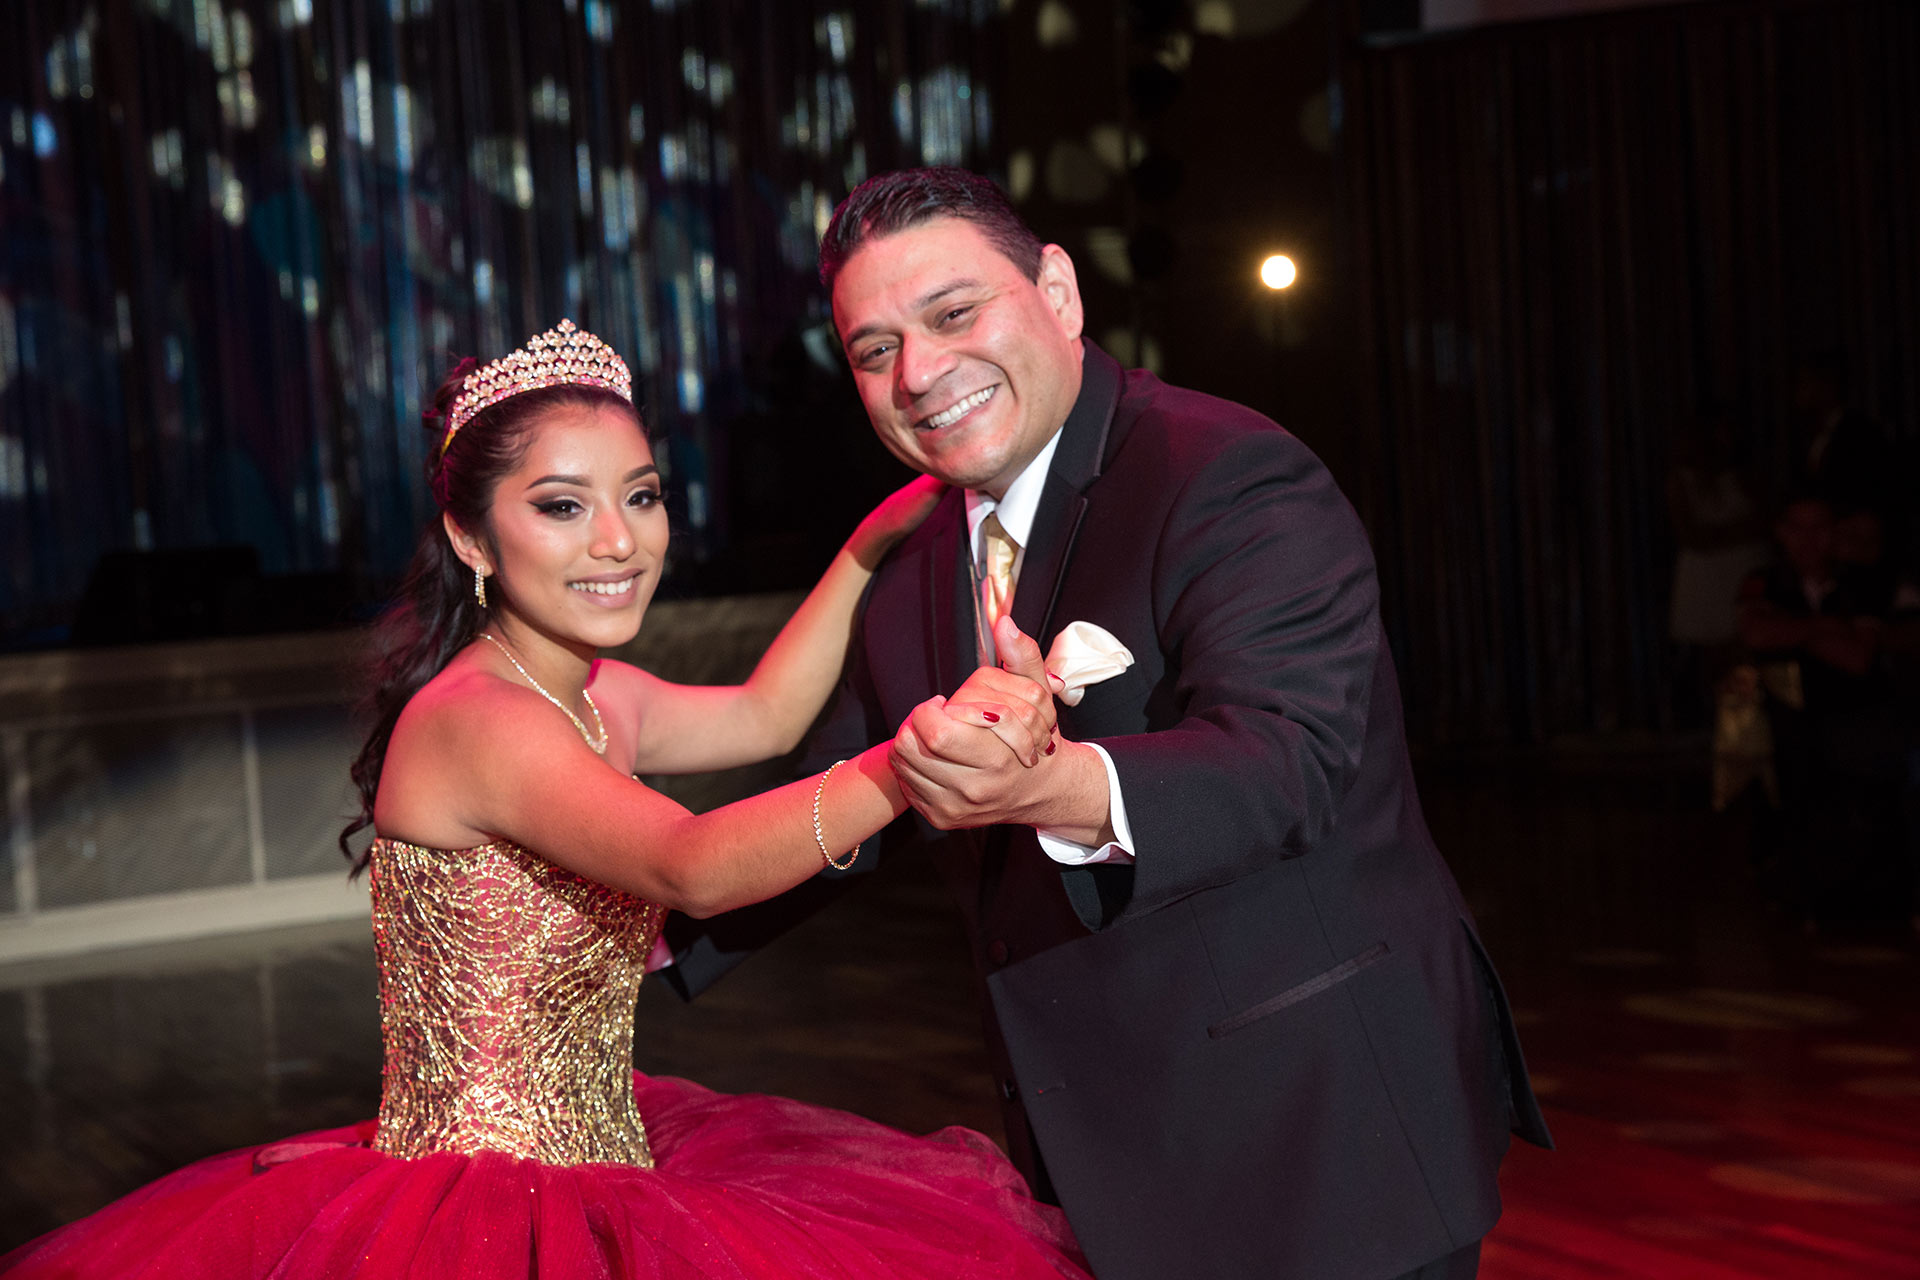 Quinceanera Photography At Sams Town Hotel And Gambling Hall Las Vegas